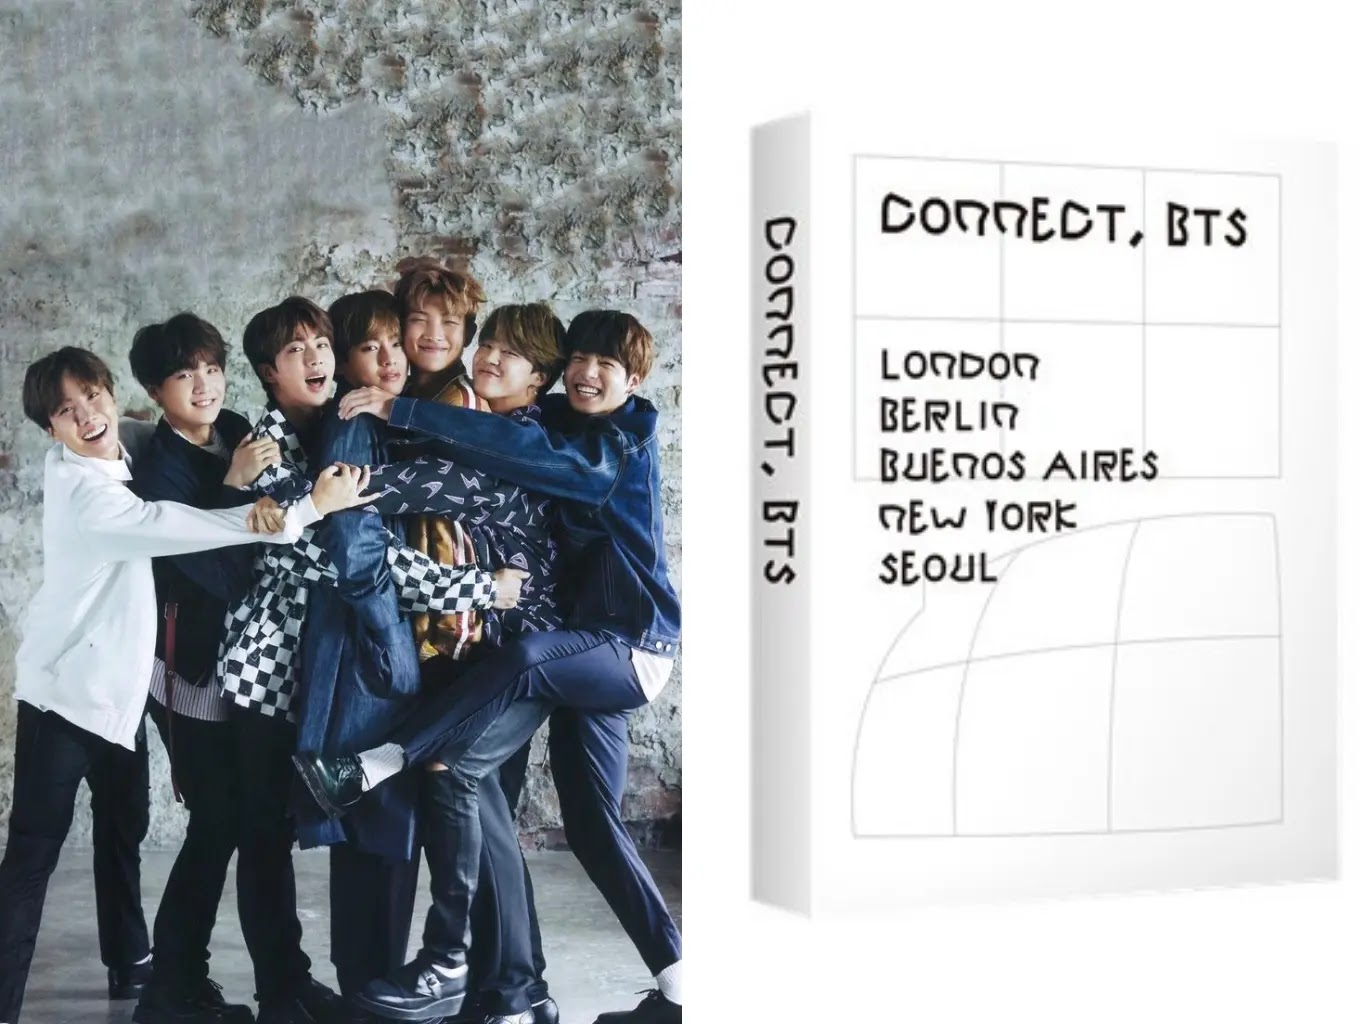 BTS Releases Special E-Book 'CONNECT, BTS' Which Can be Downloaded For Free